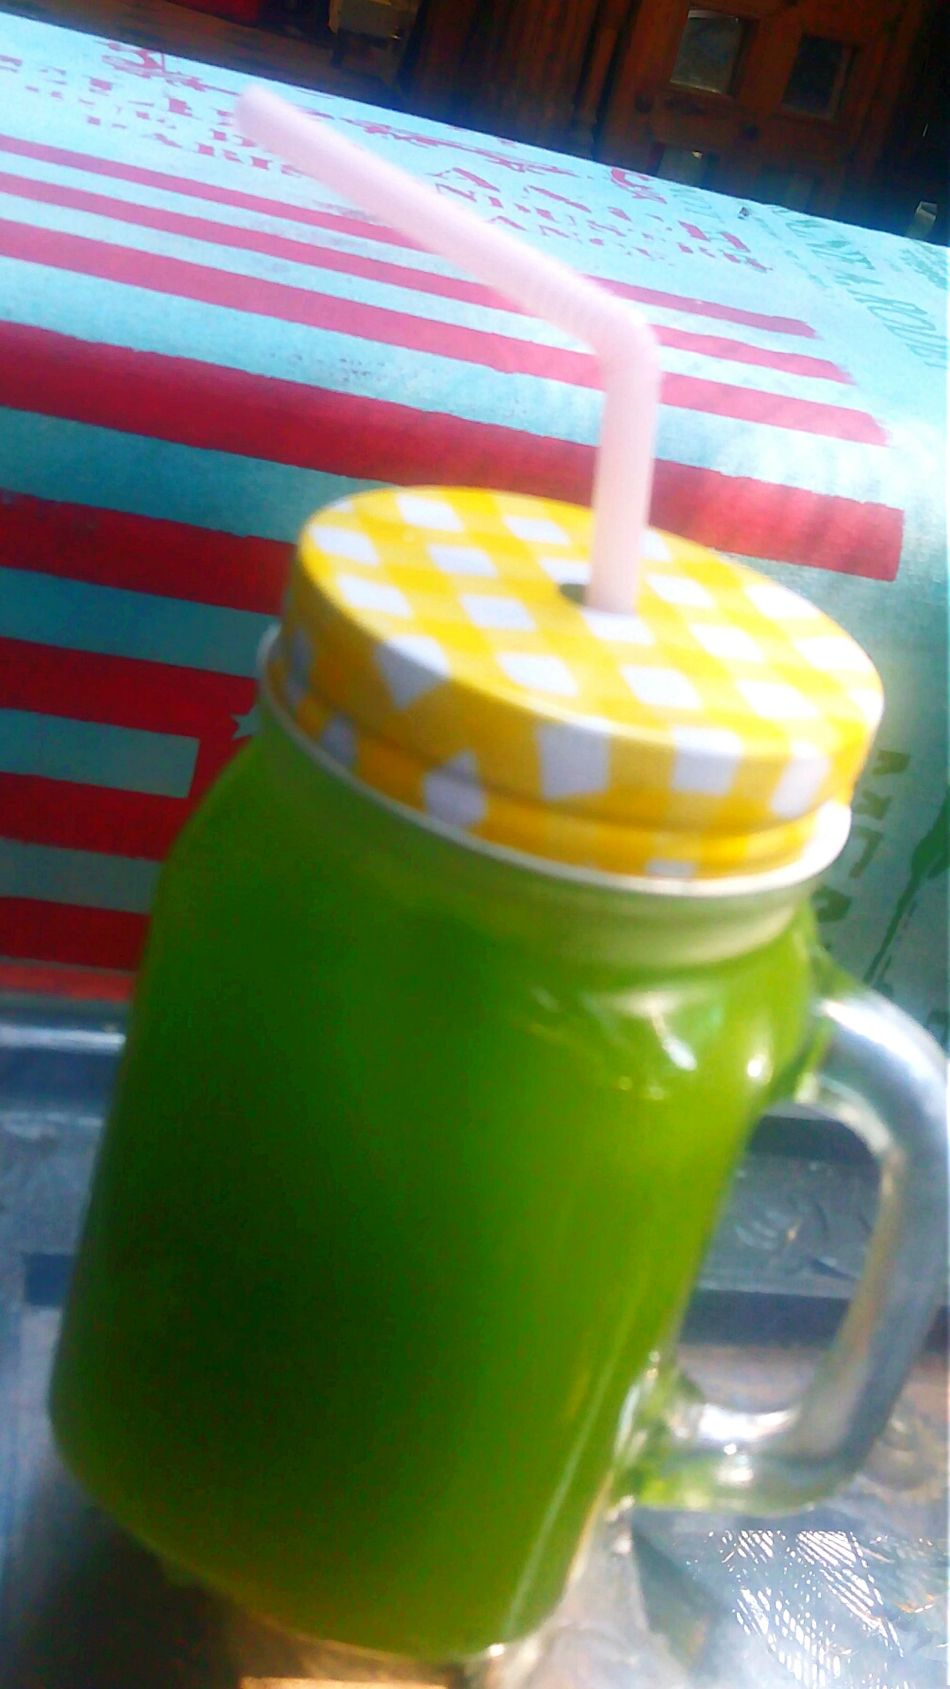 Green Juice Healthy Food Summertime My Favorite Breakfast Moment The Essence Of Summer Colour Of Life